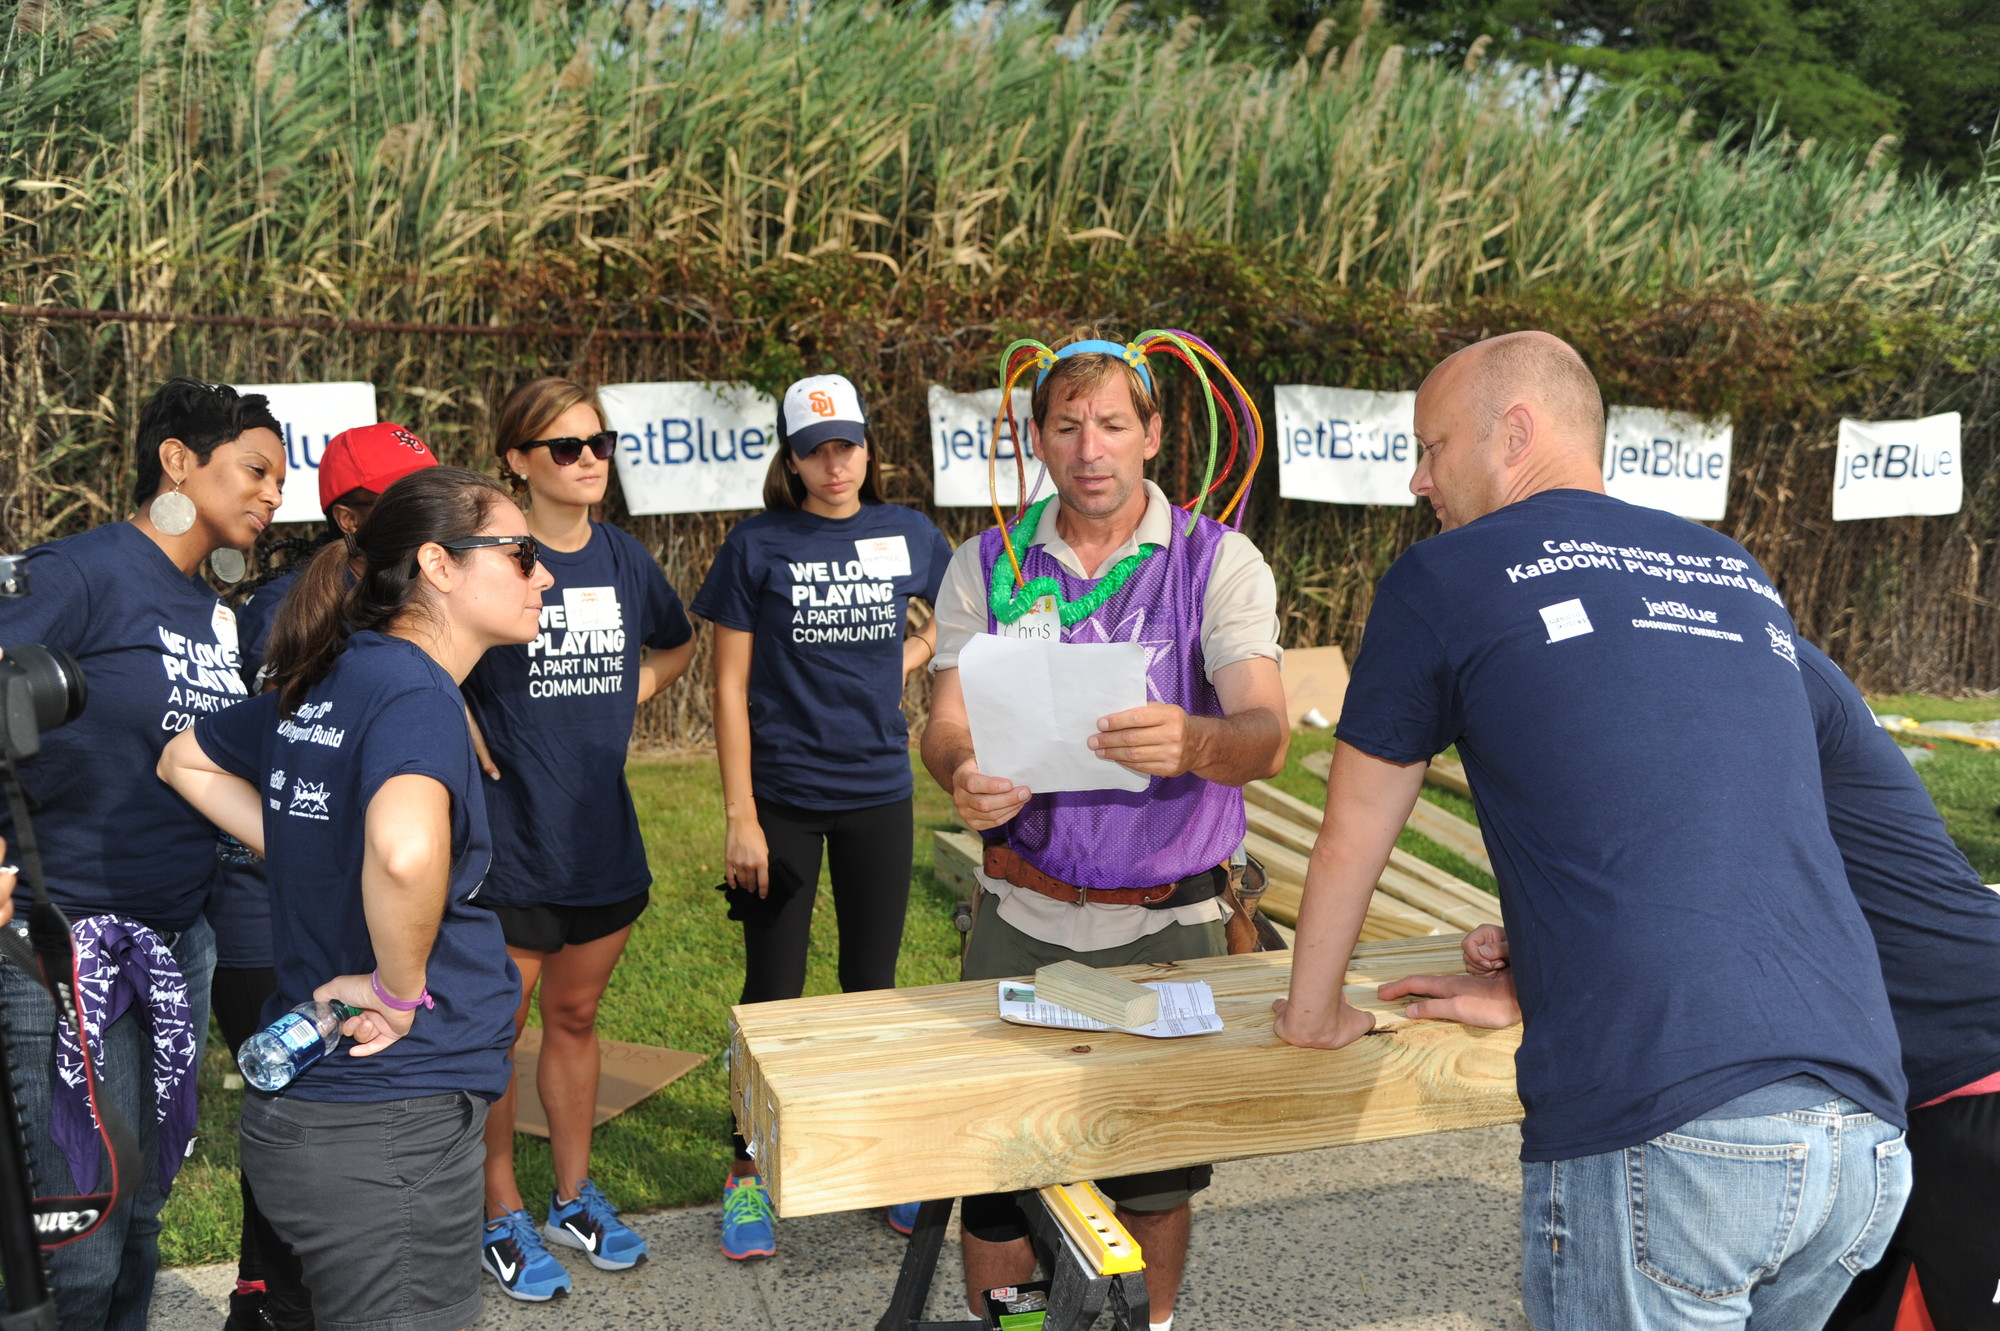 Chris Horvath of Island Park instructed a team of volunteers.